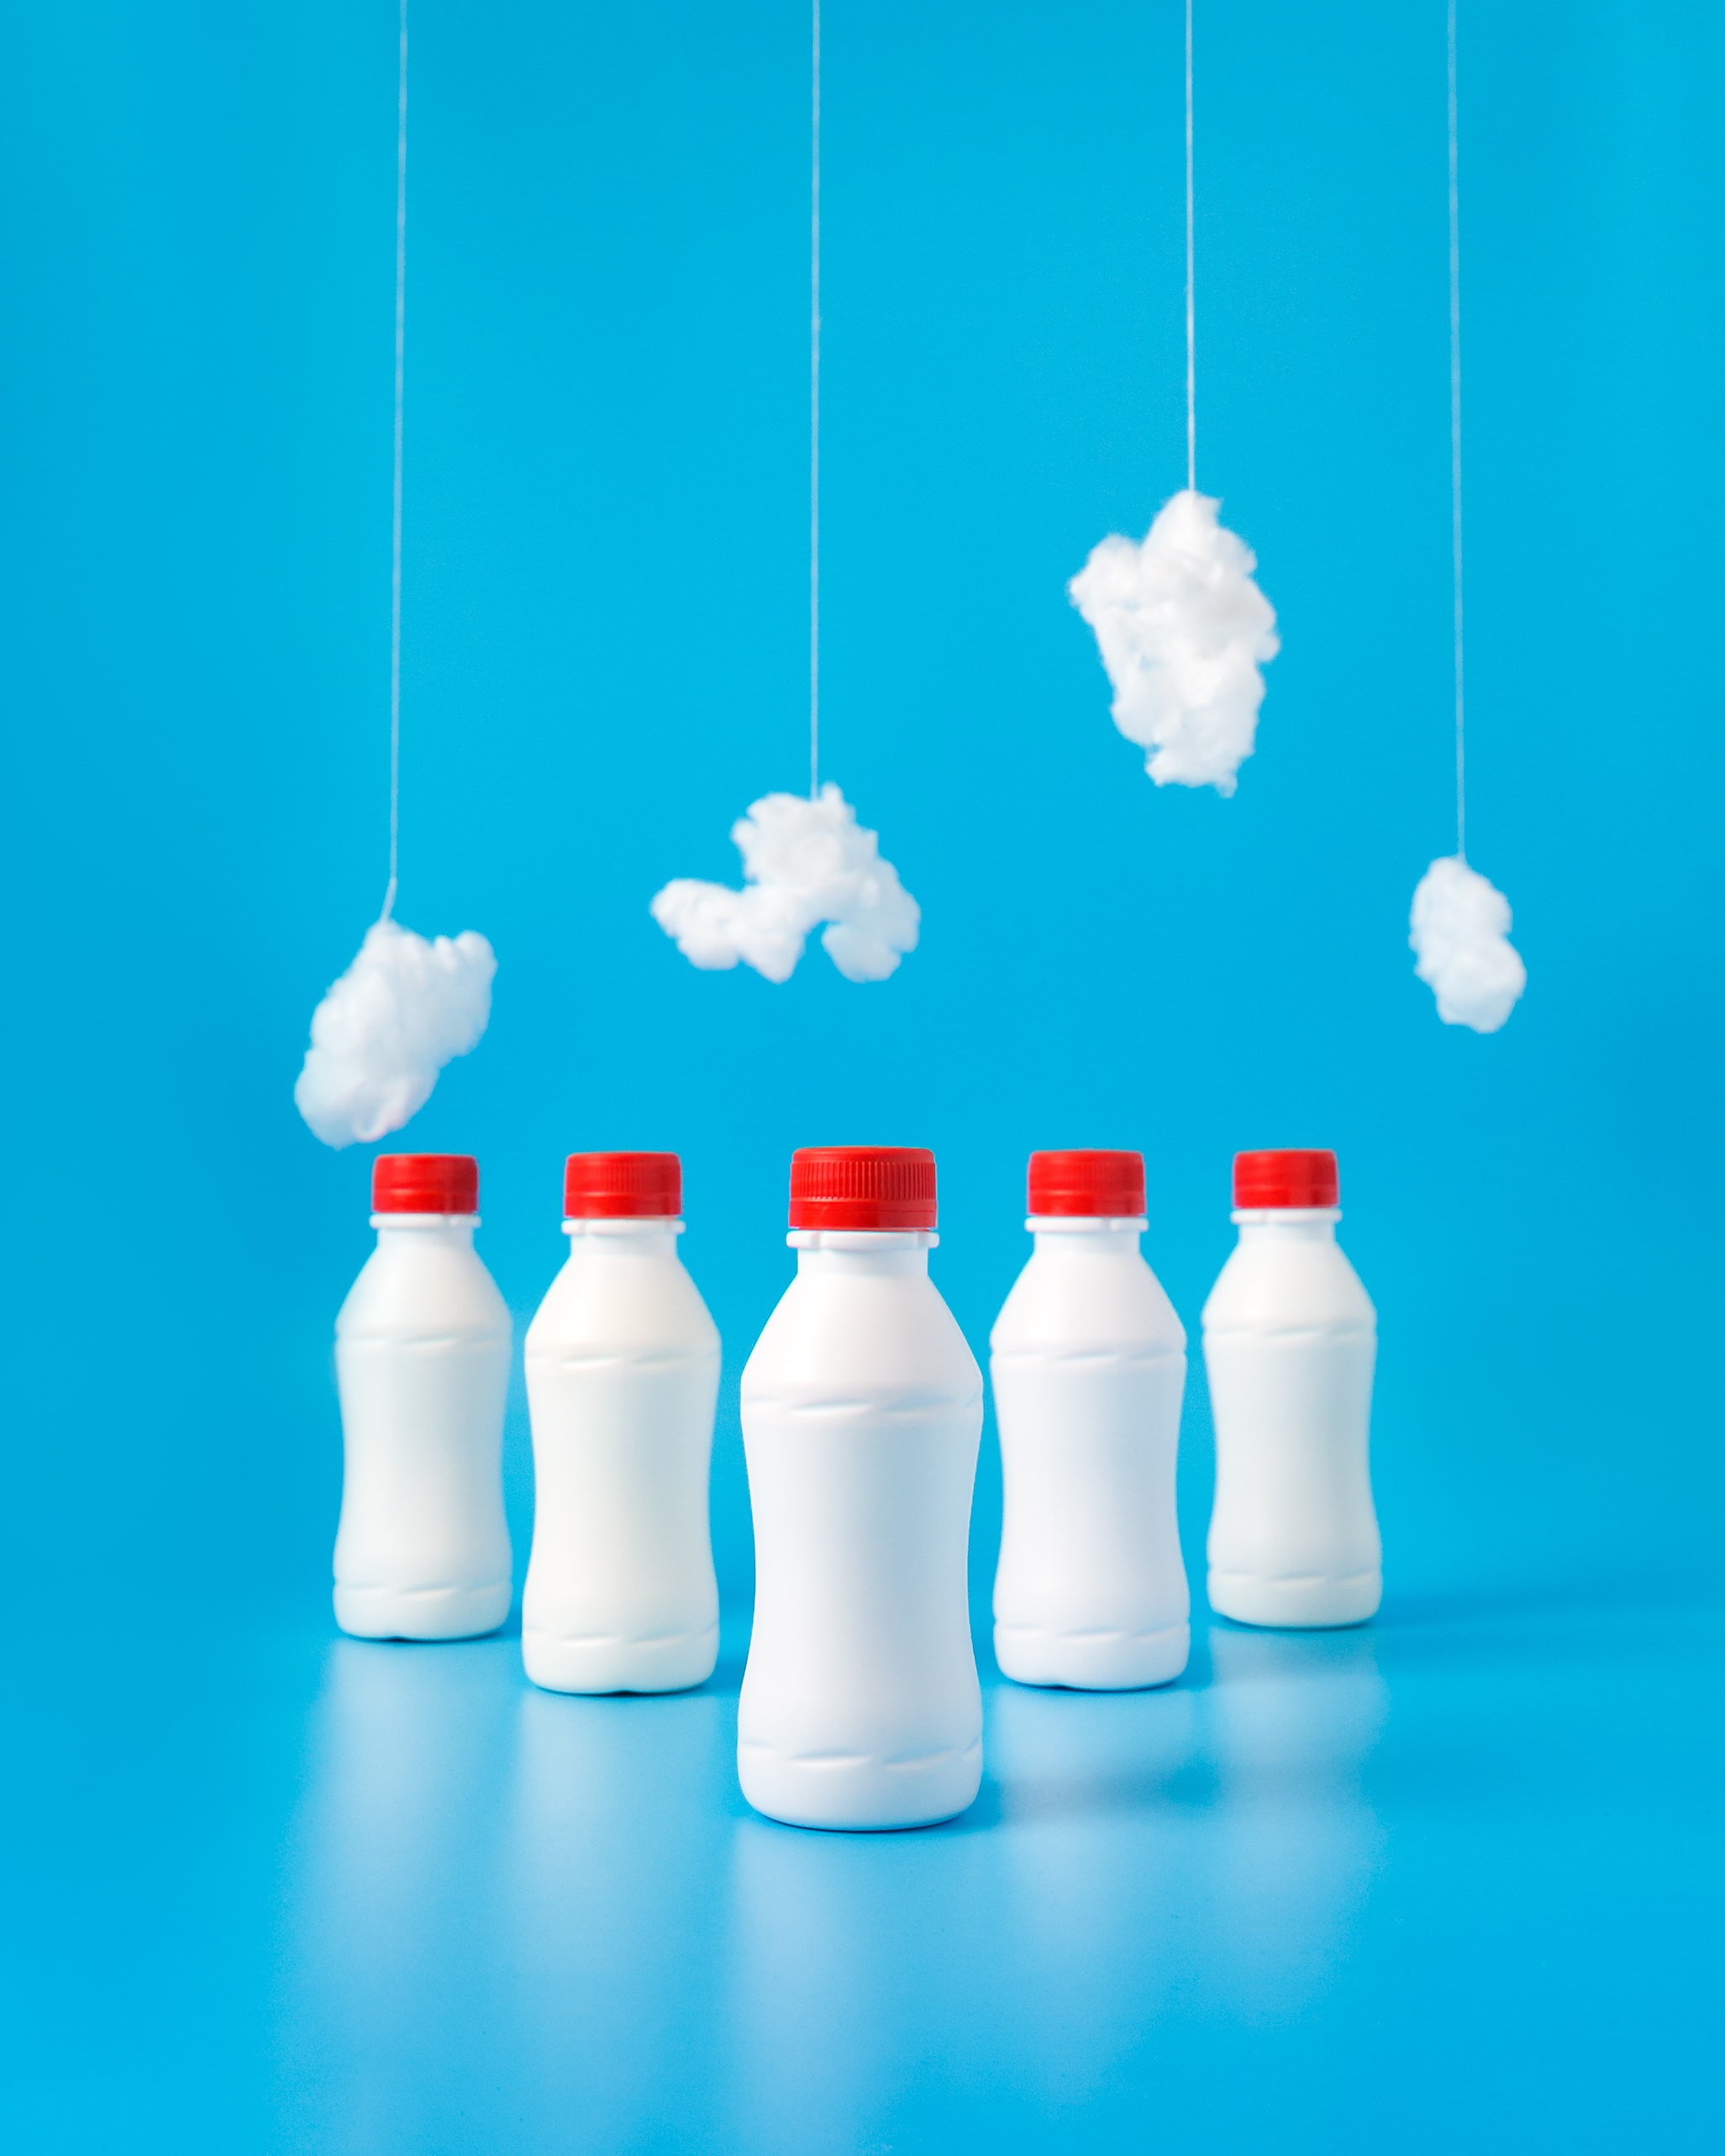 five white plastic bottles on blue surface